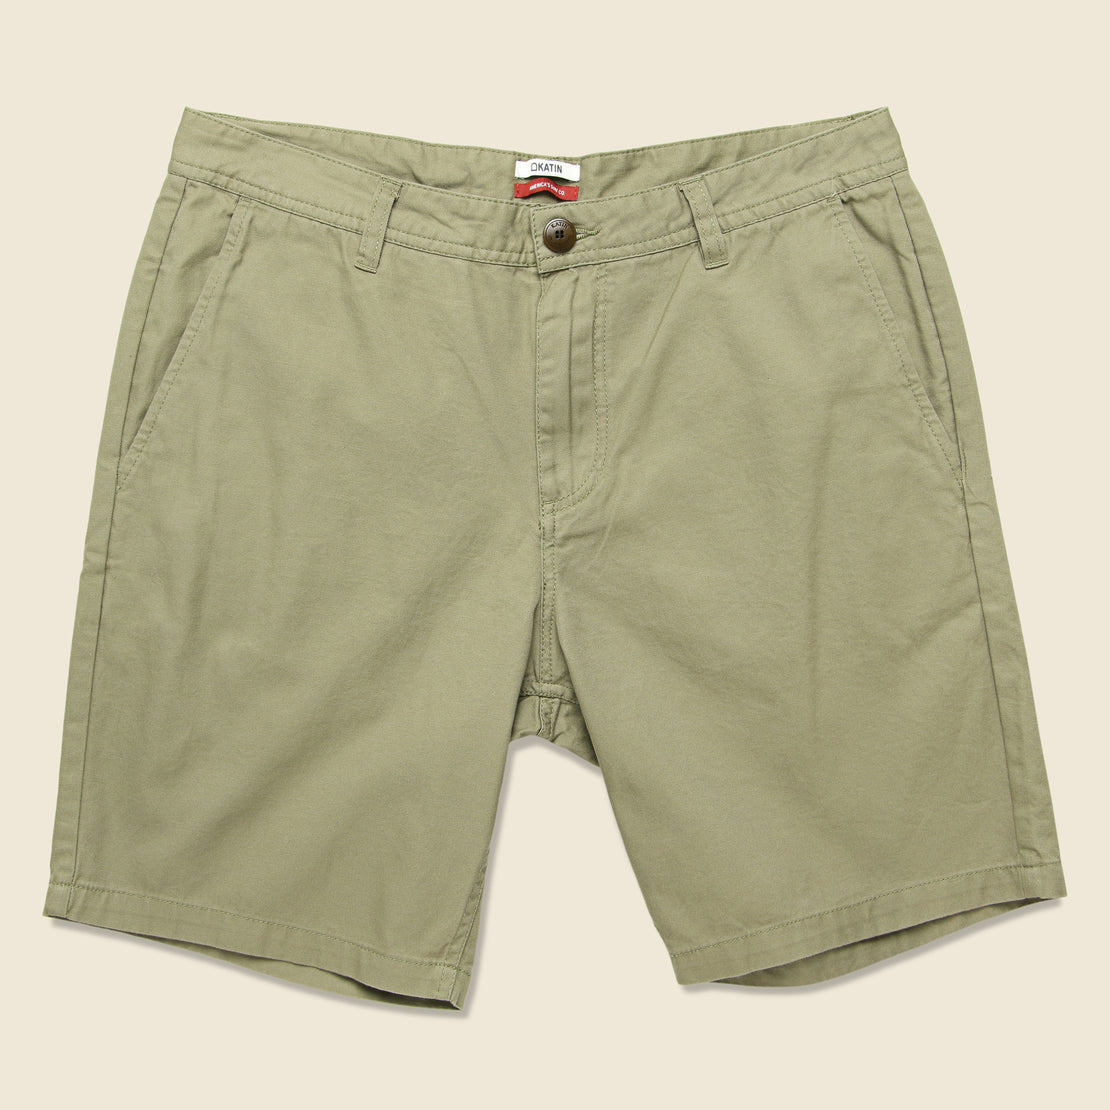 Katin Cove Short - Khaki